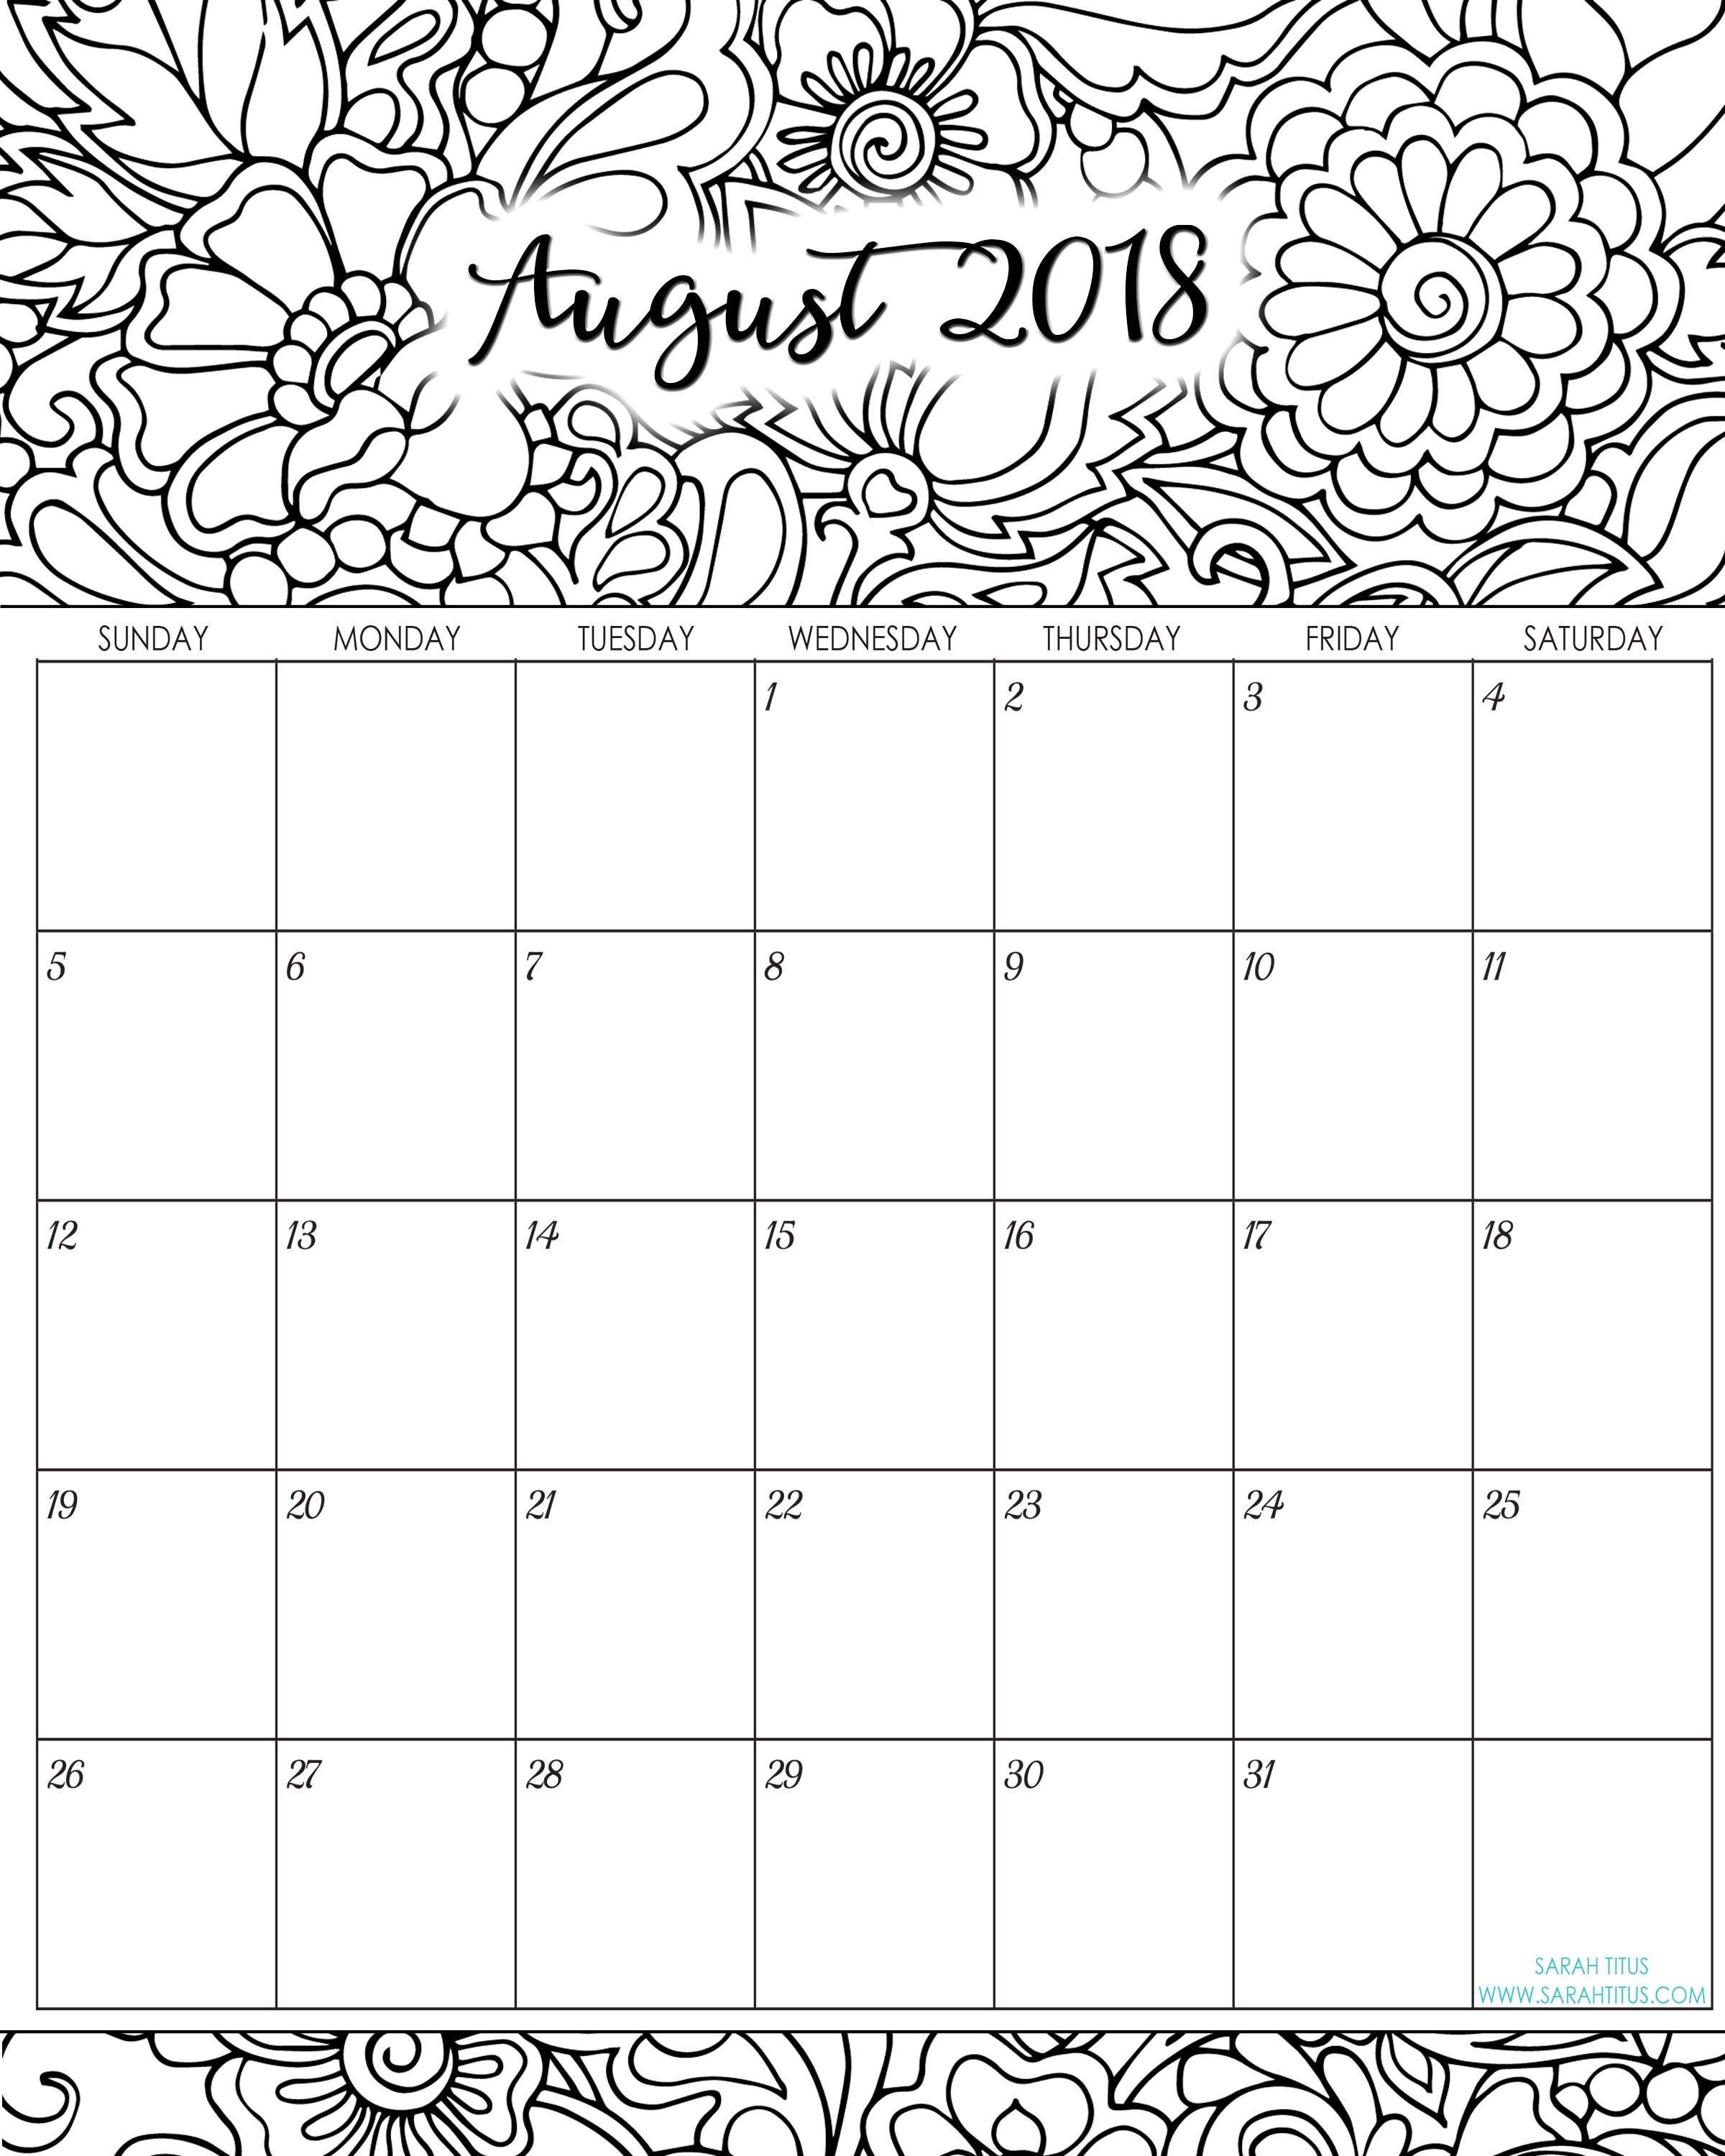 august 2018 calendar printable template holidays pdf word dual Calendar August 2018 Printable Zodiac erdferdf